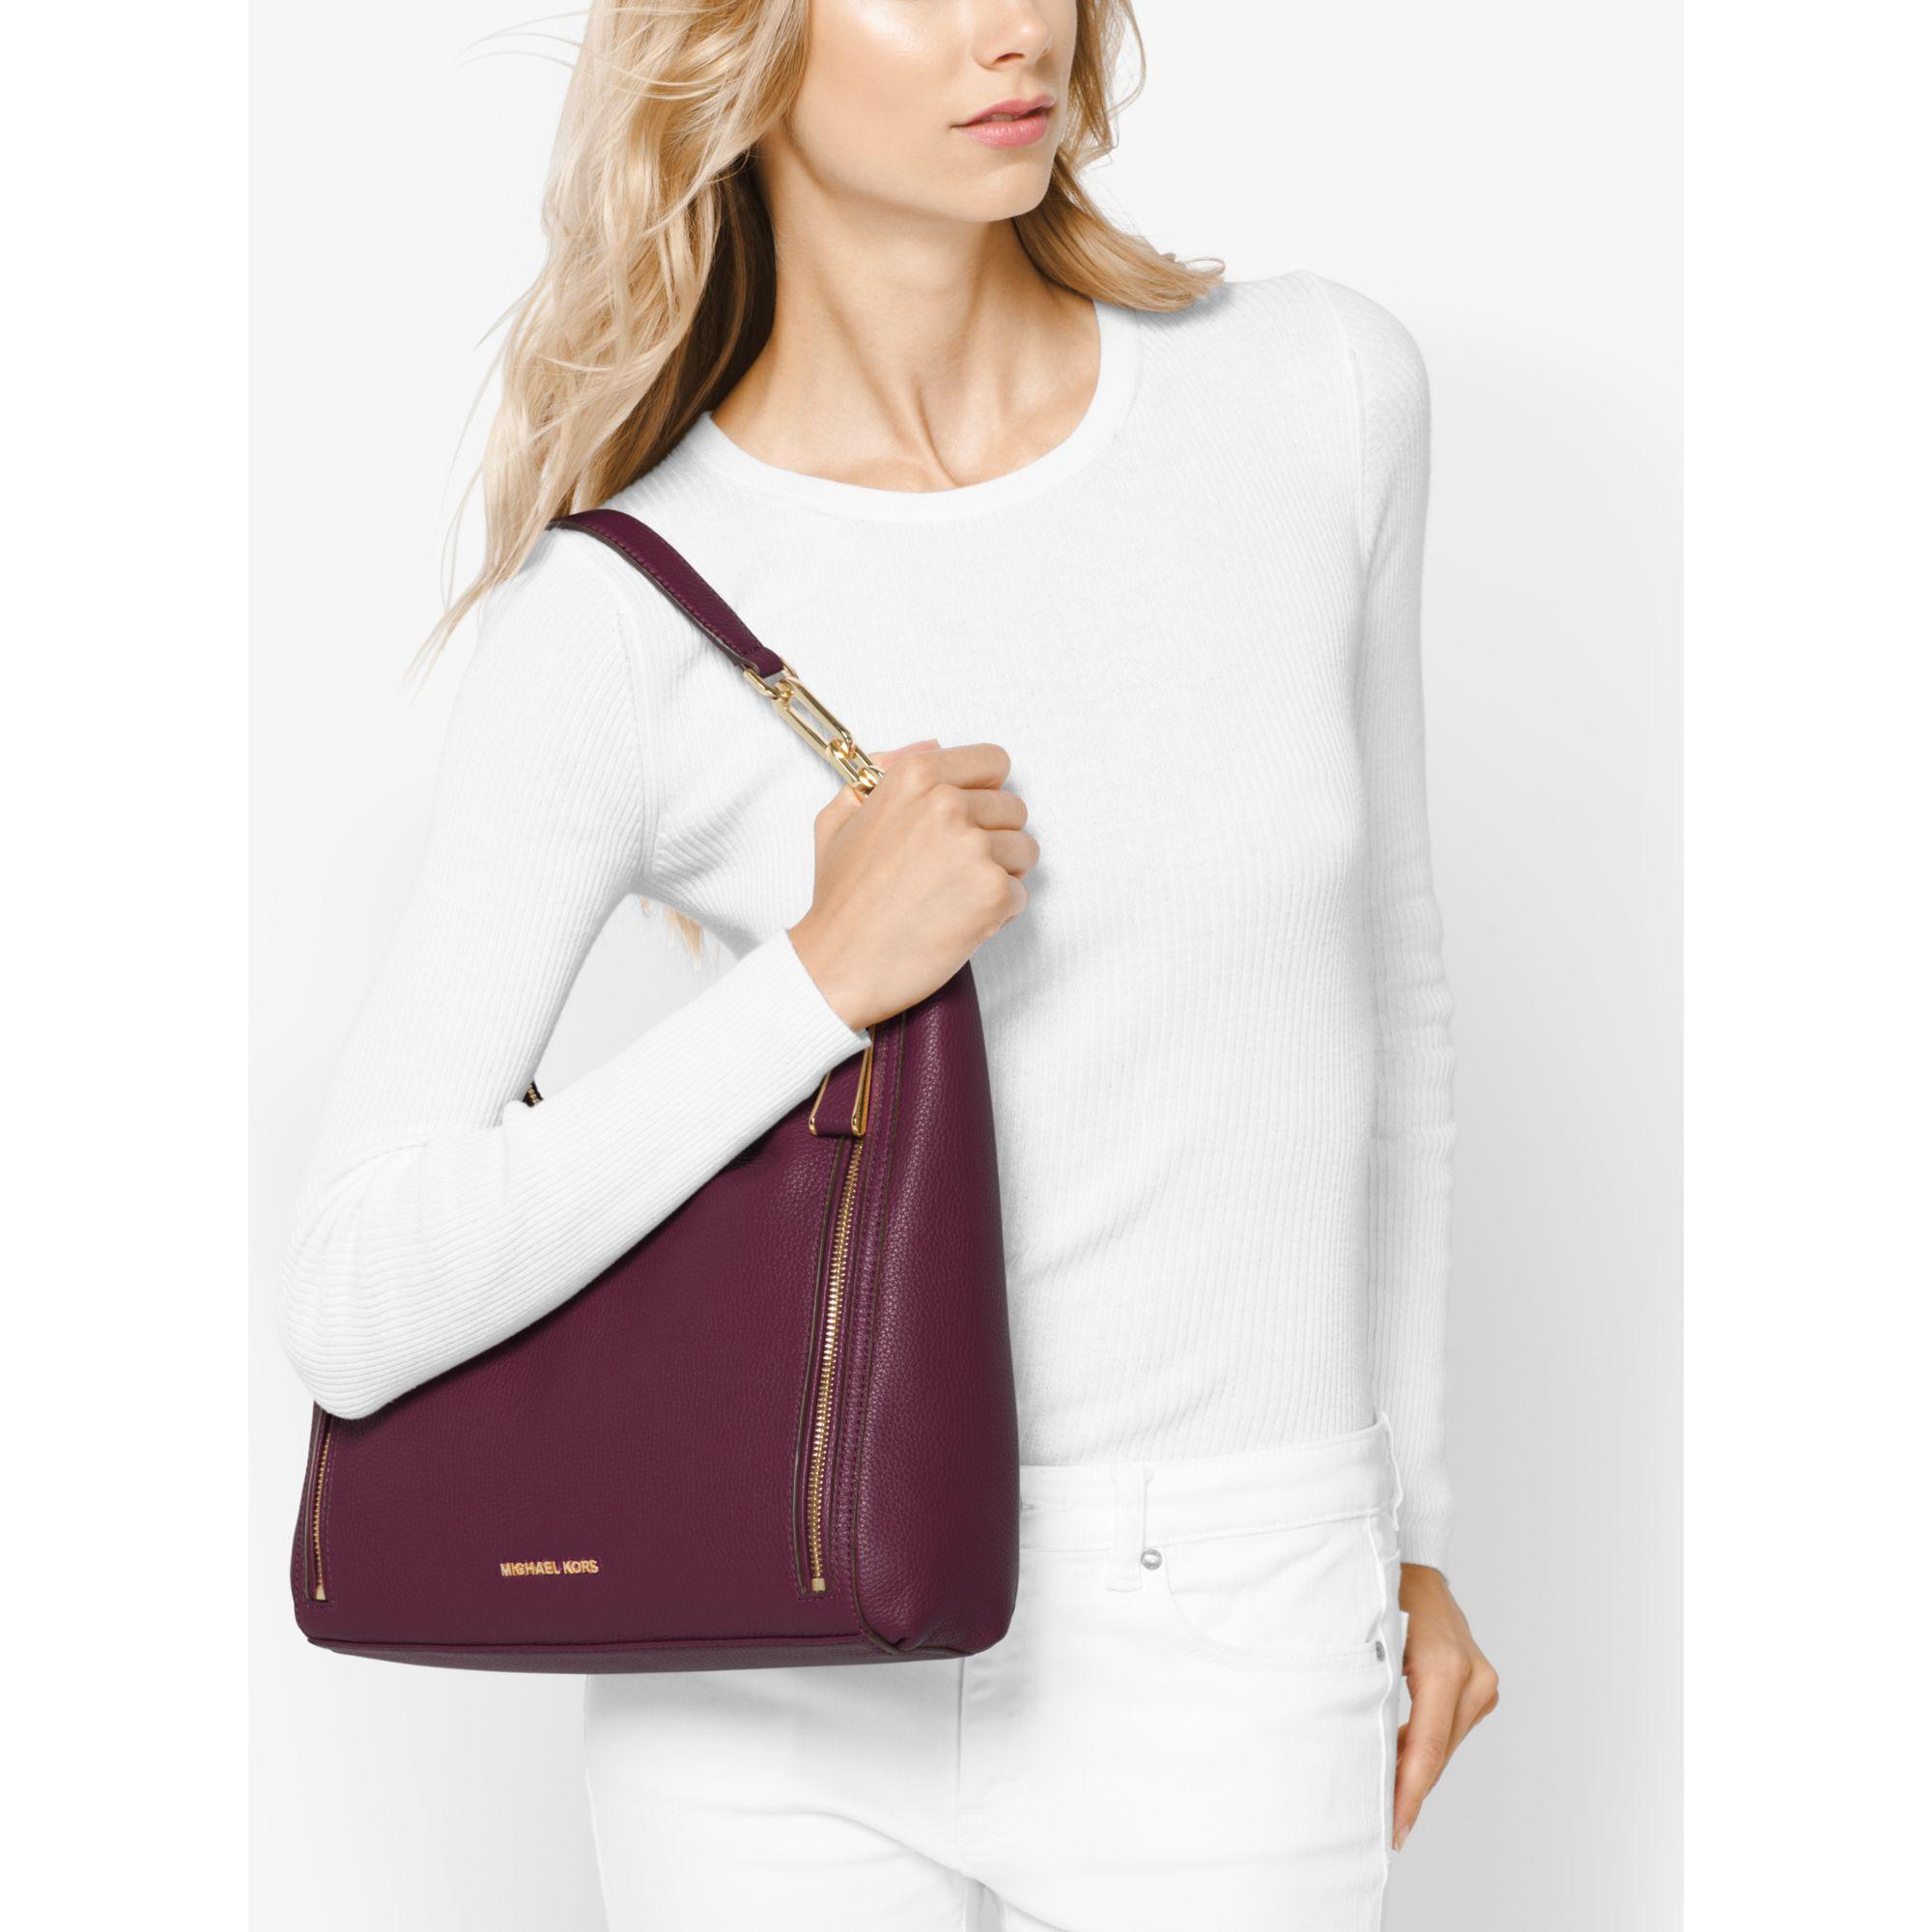 ... Michael kors Matilda Large Leather Shoulder Bag in Purple ... 8d82f193d2af4